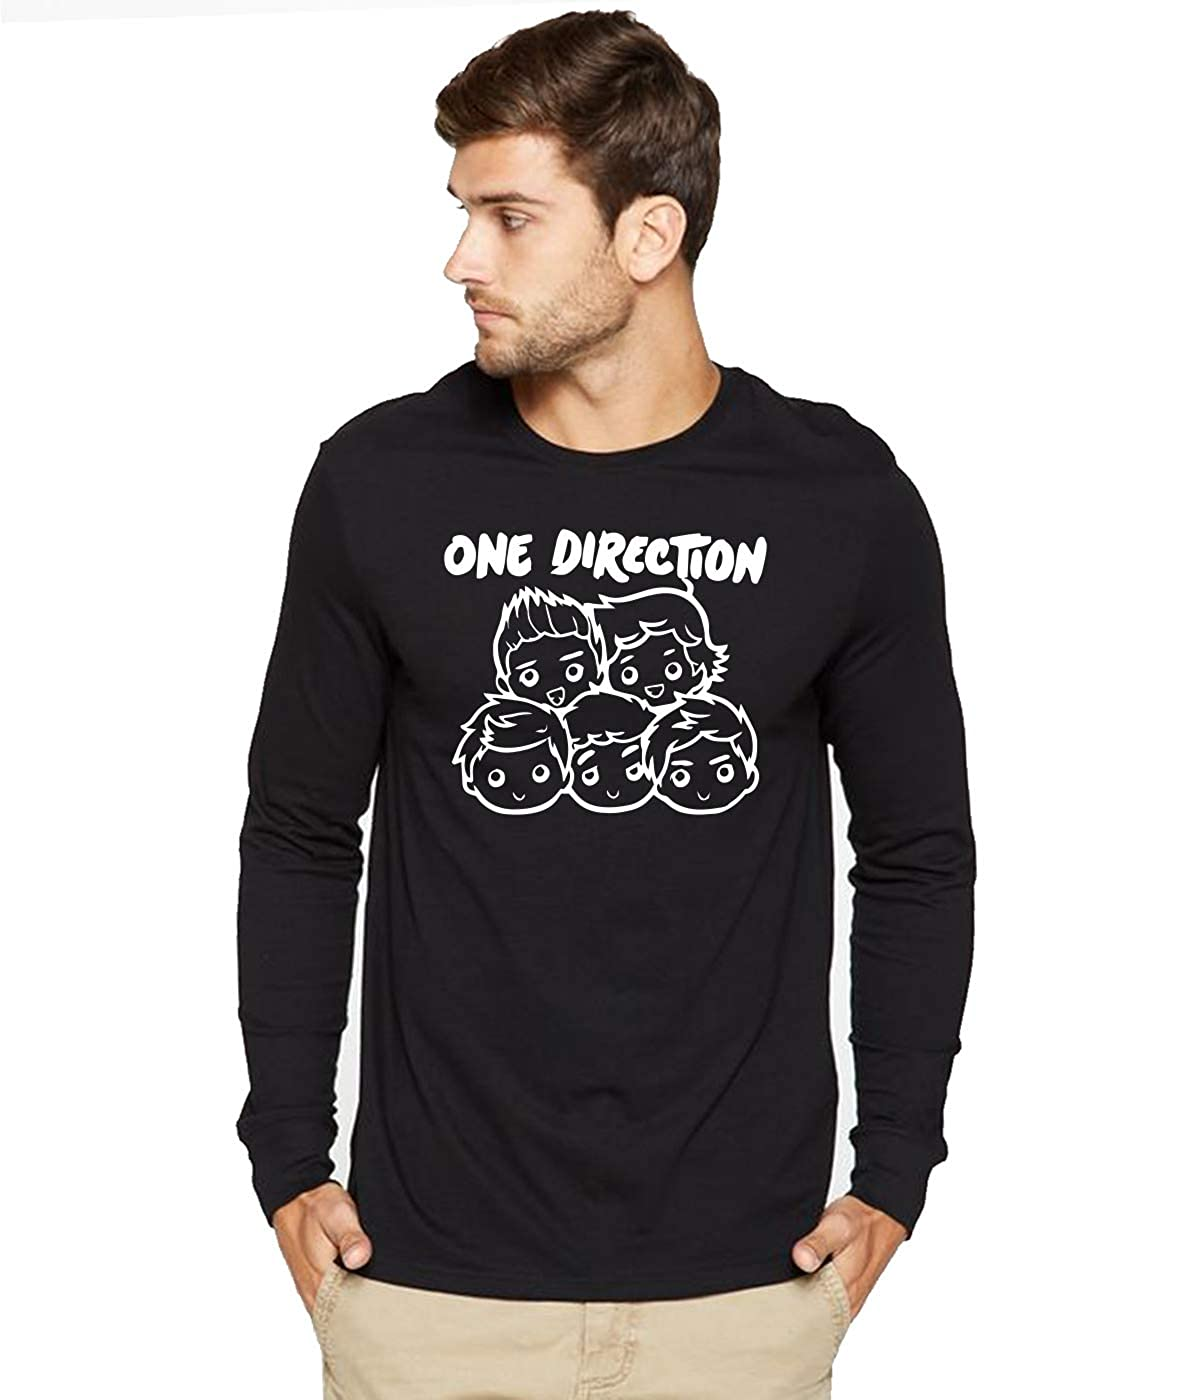 Promojo Crafter One Direction pop Band Songs Music Funky